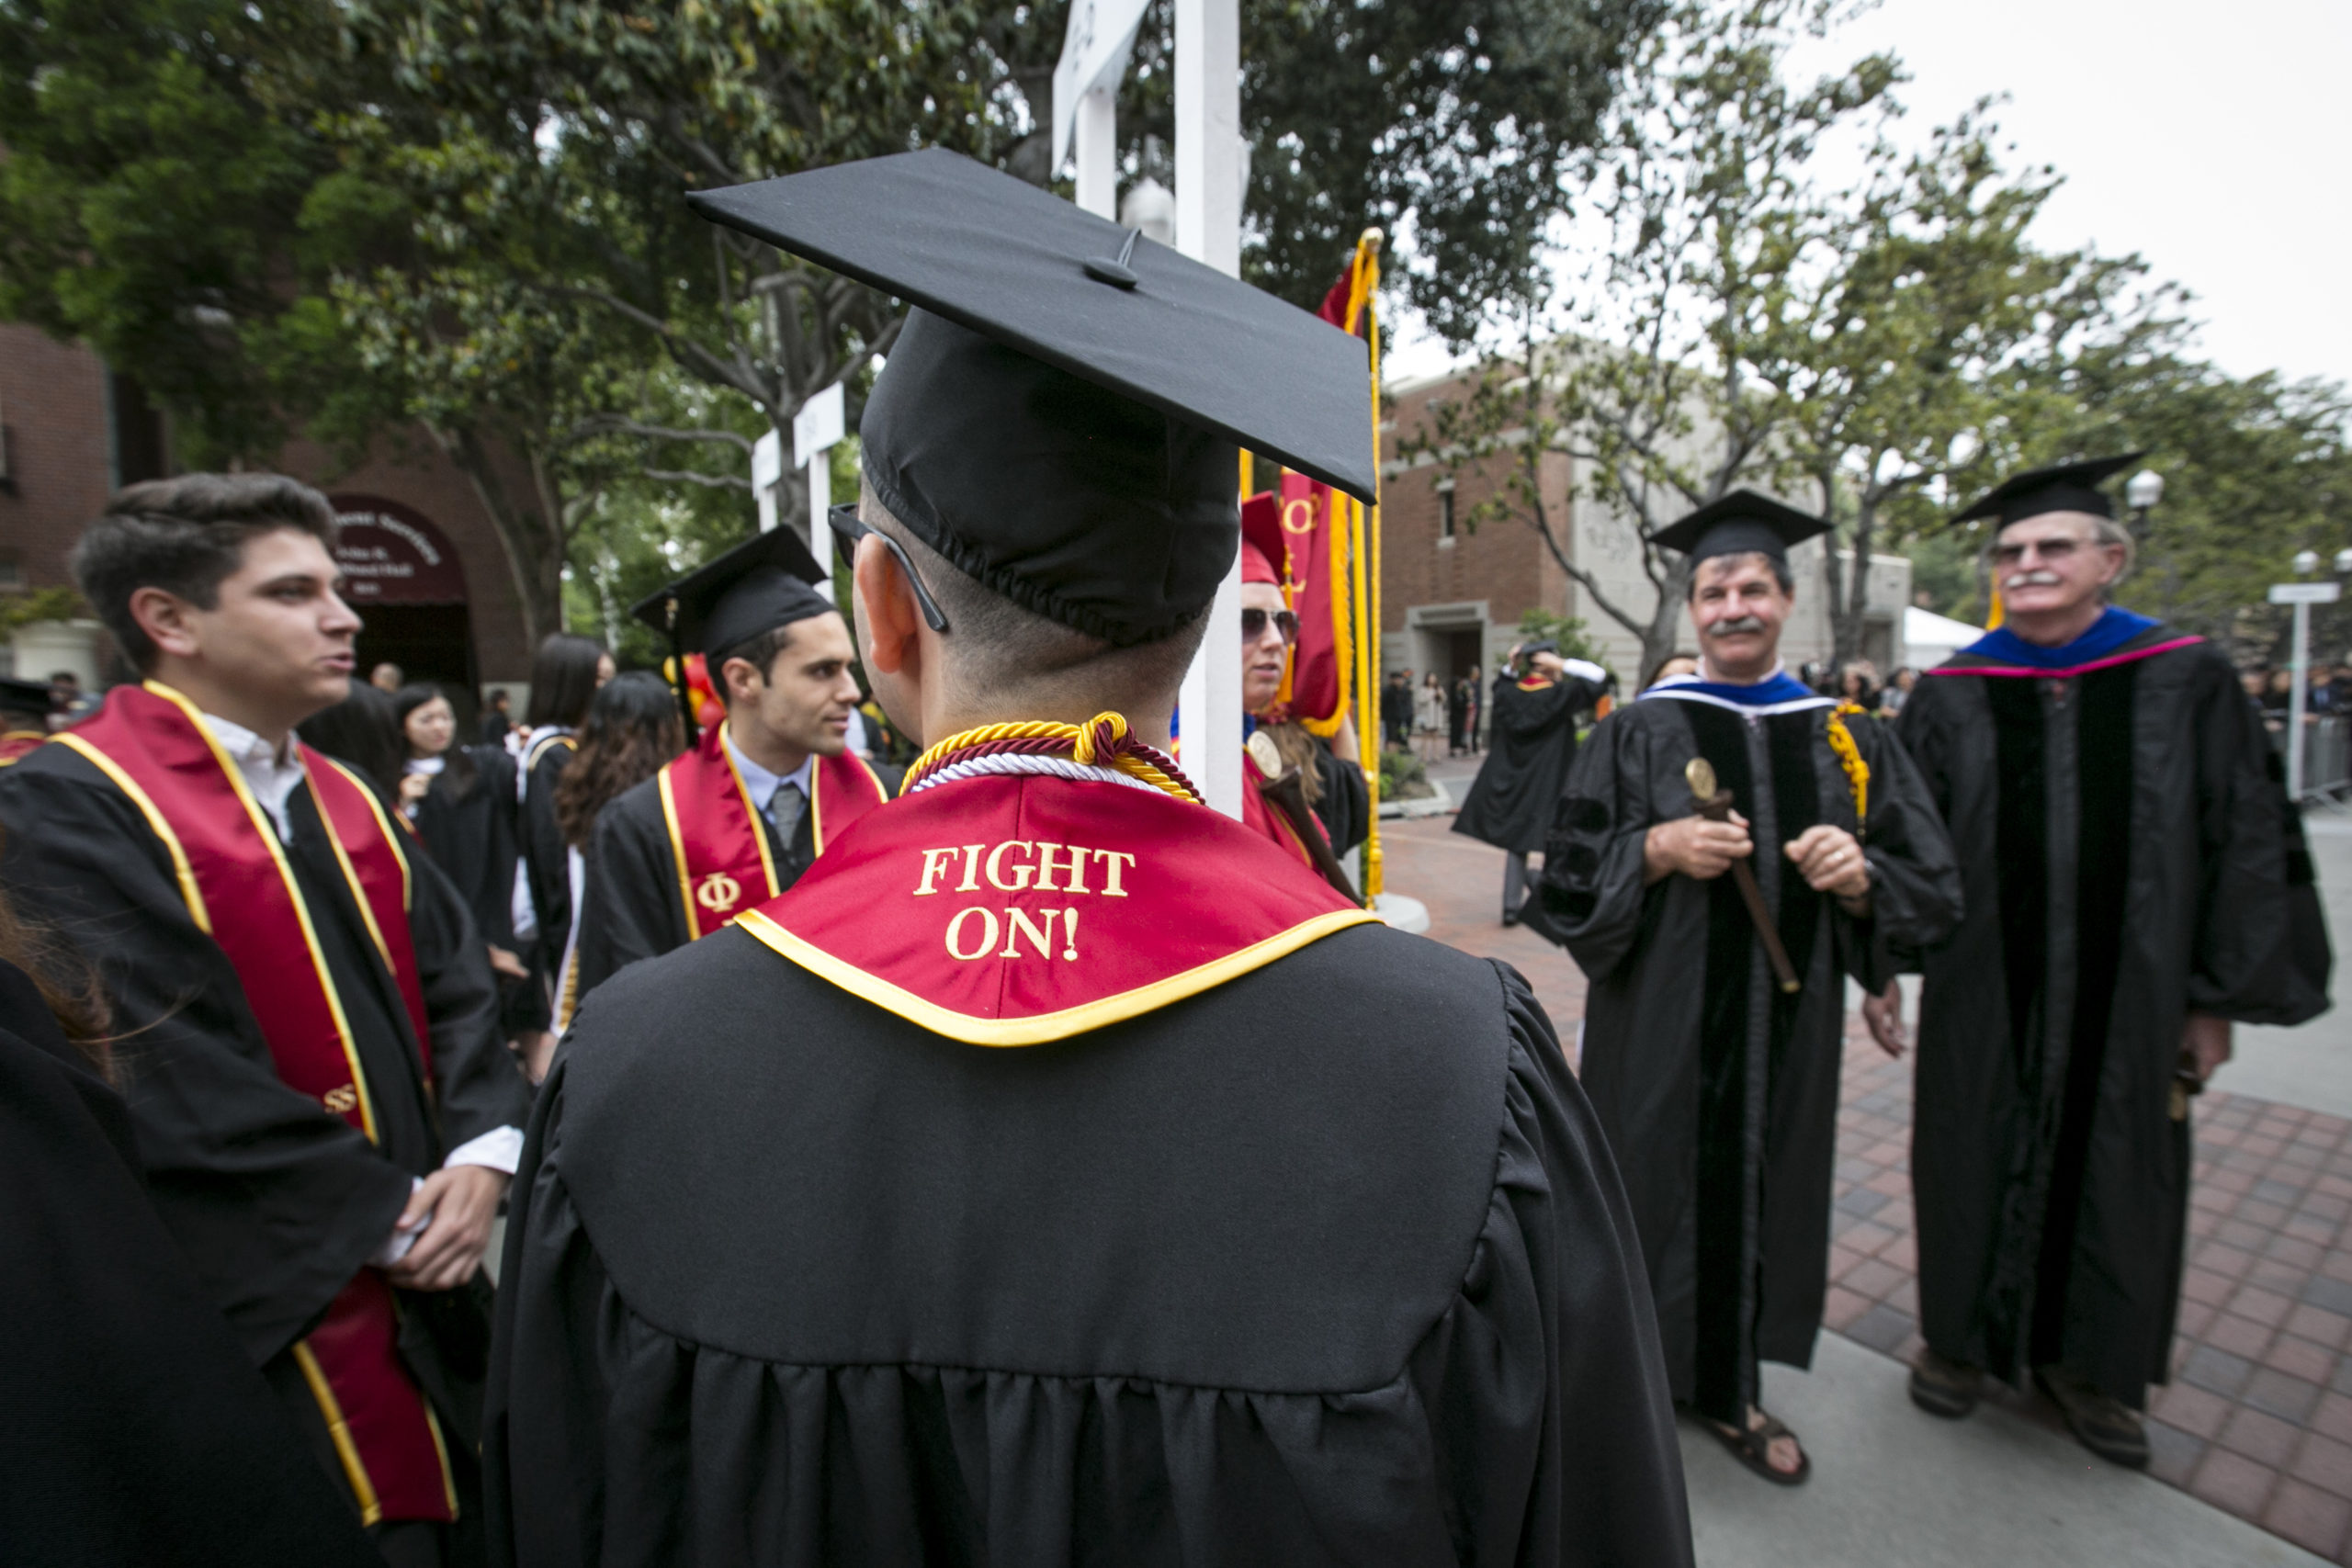 USC student with a Fight On Sash